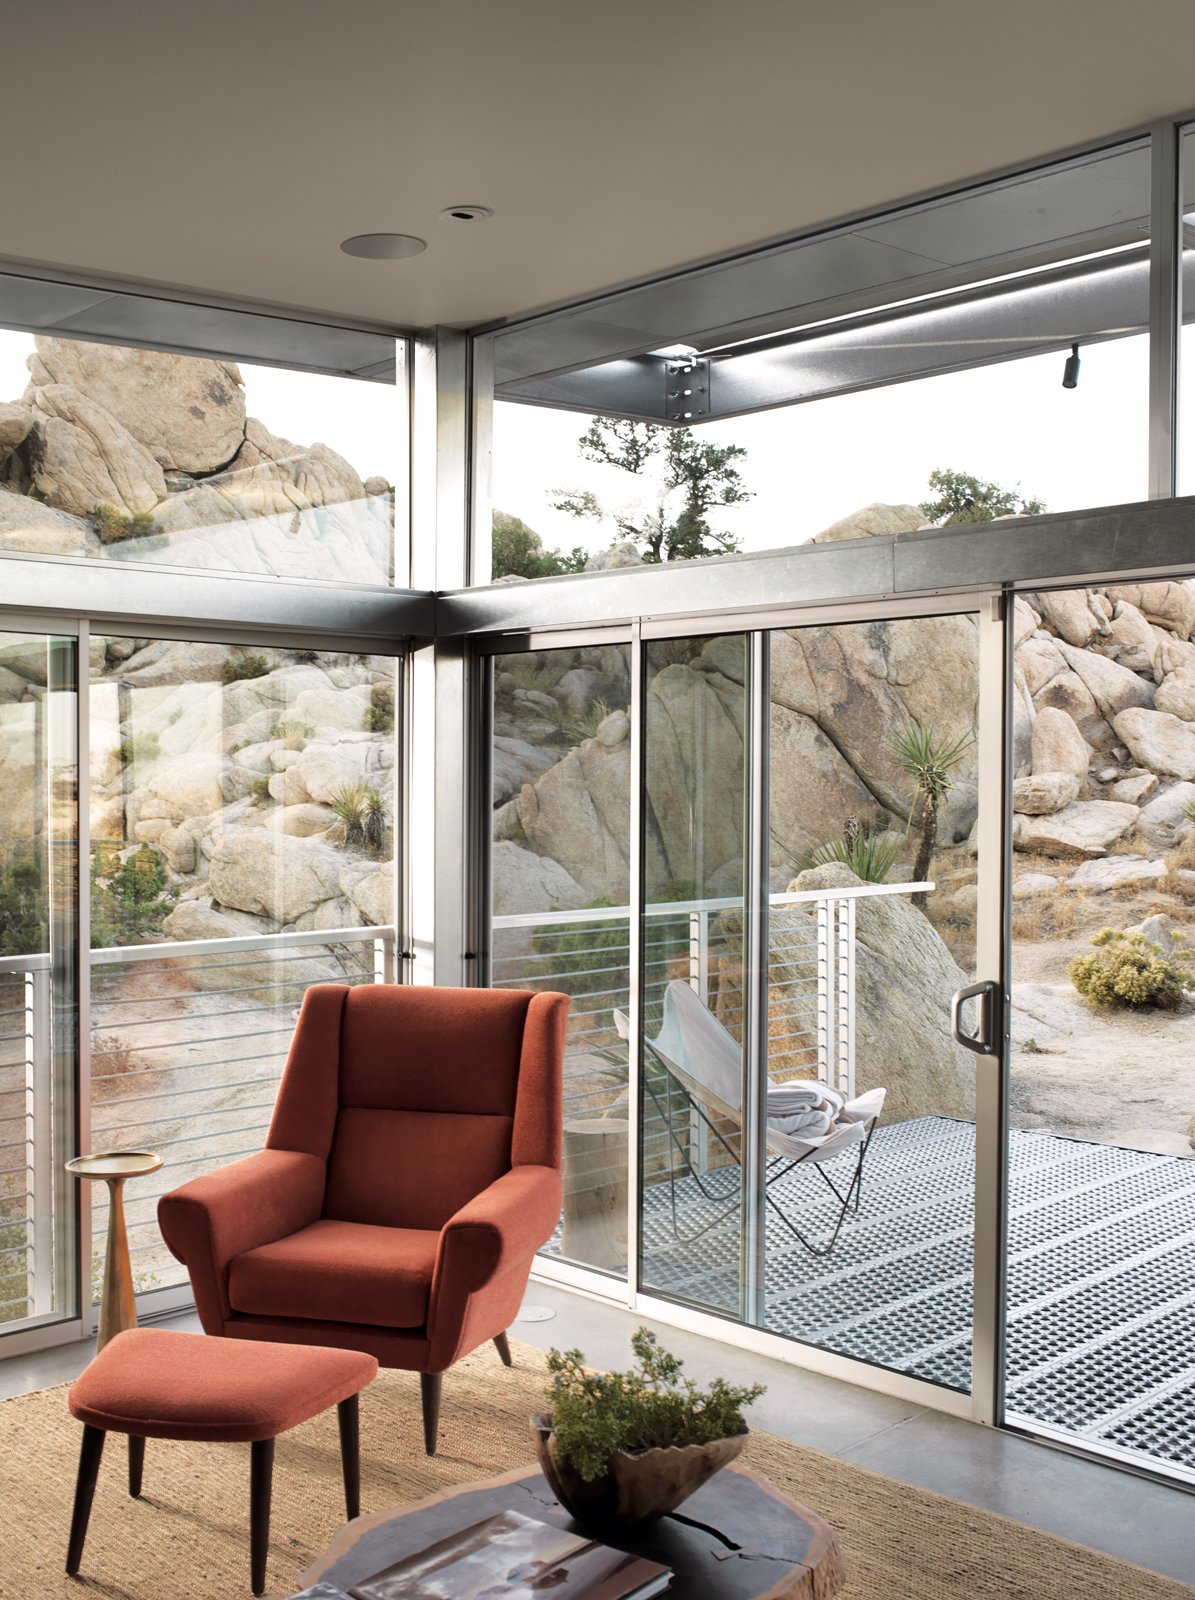 """The main living area extends to the deck through sliding glass doors. Small """"Hybrid Prefab"""" Home in the Desert - Photo 6 of 10"""